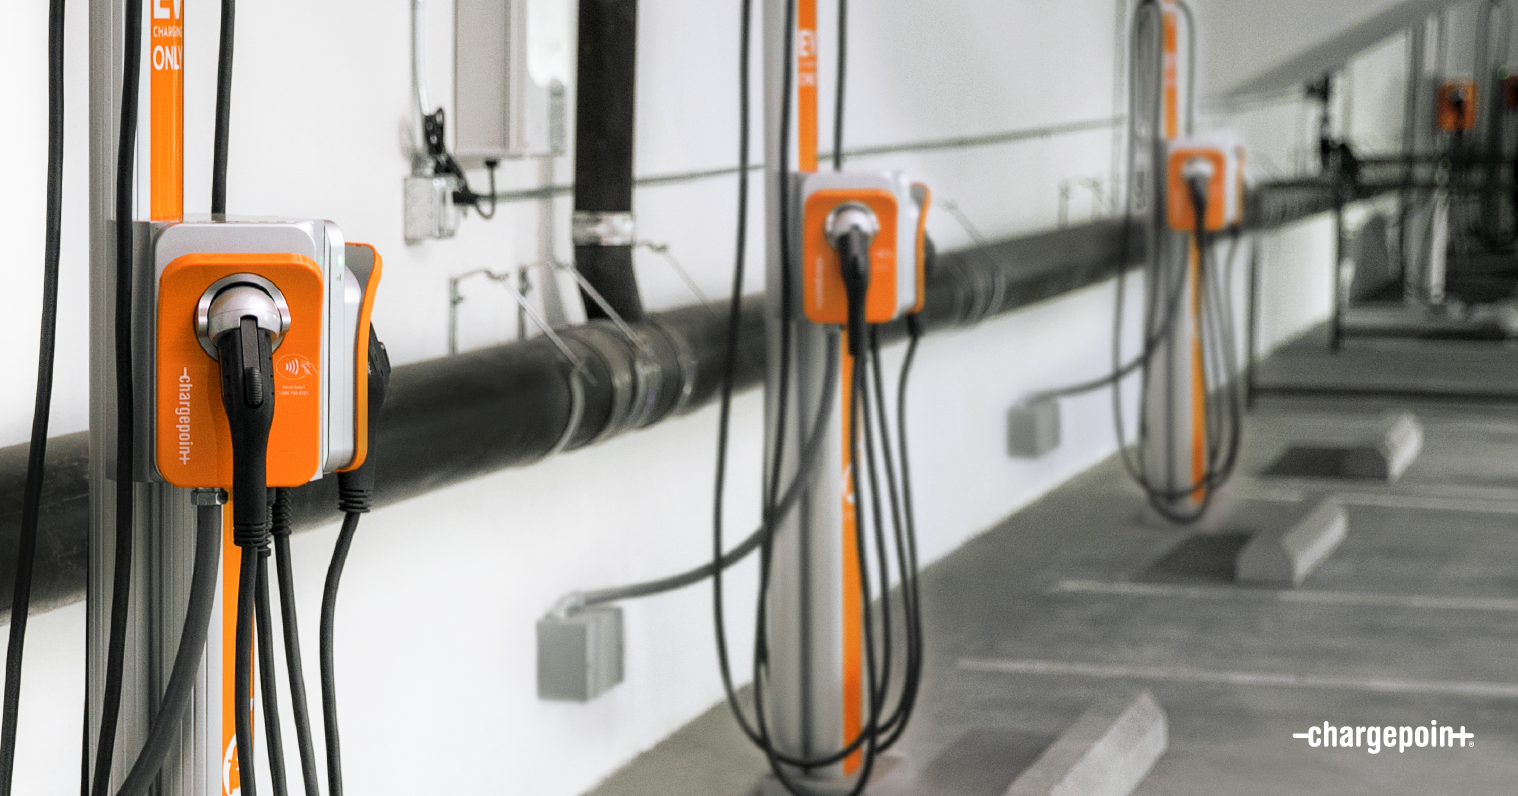 ChargePoint solutions in parking garage